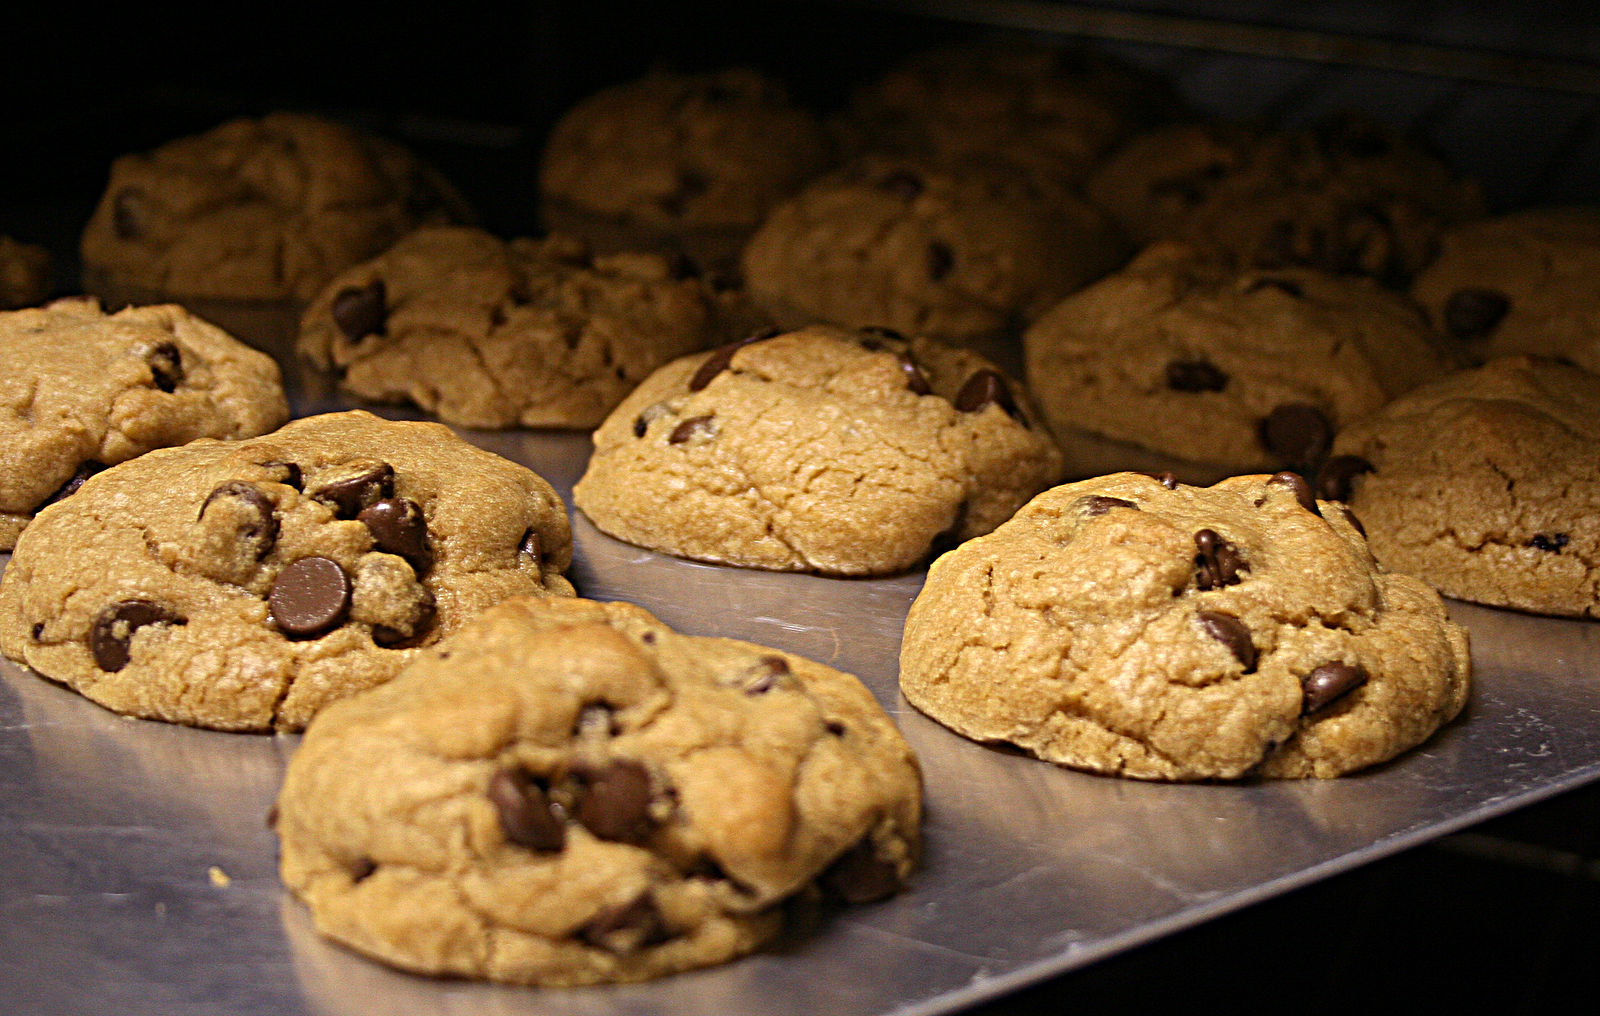 A cookie sheet of fresh baked chocolate chip cookies. These are the thick kind made with butter and brown sugar.